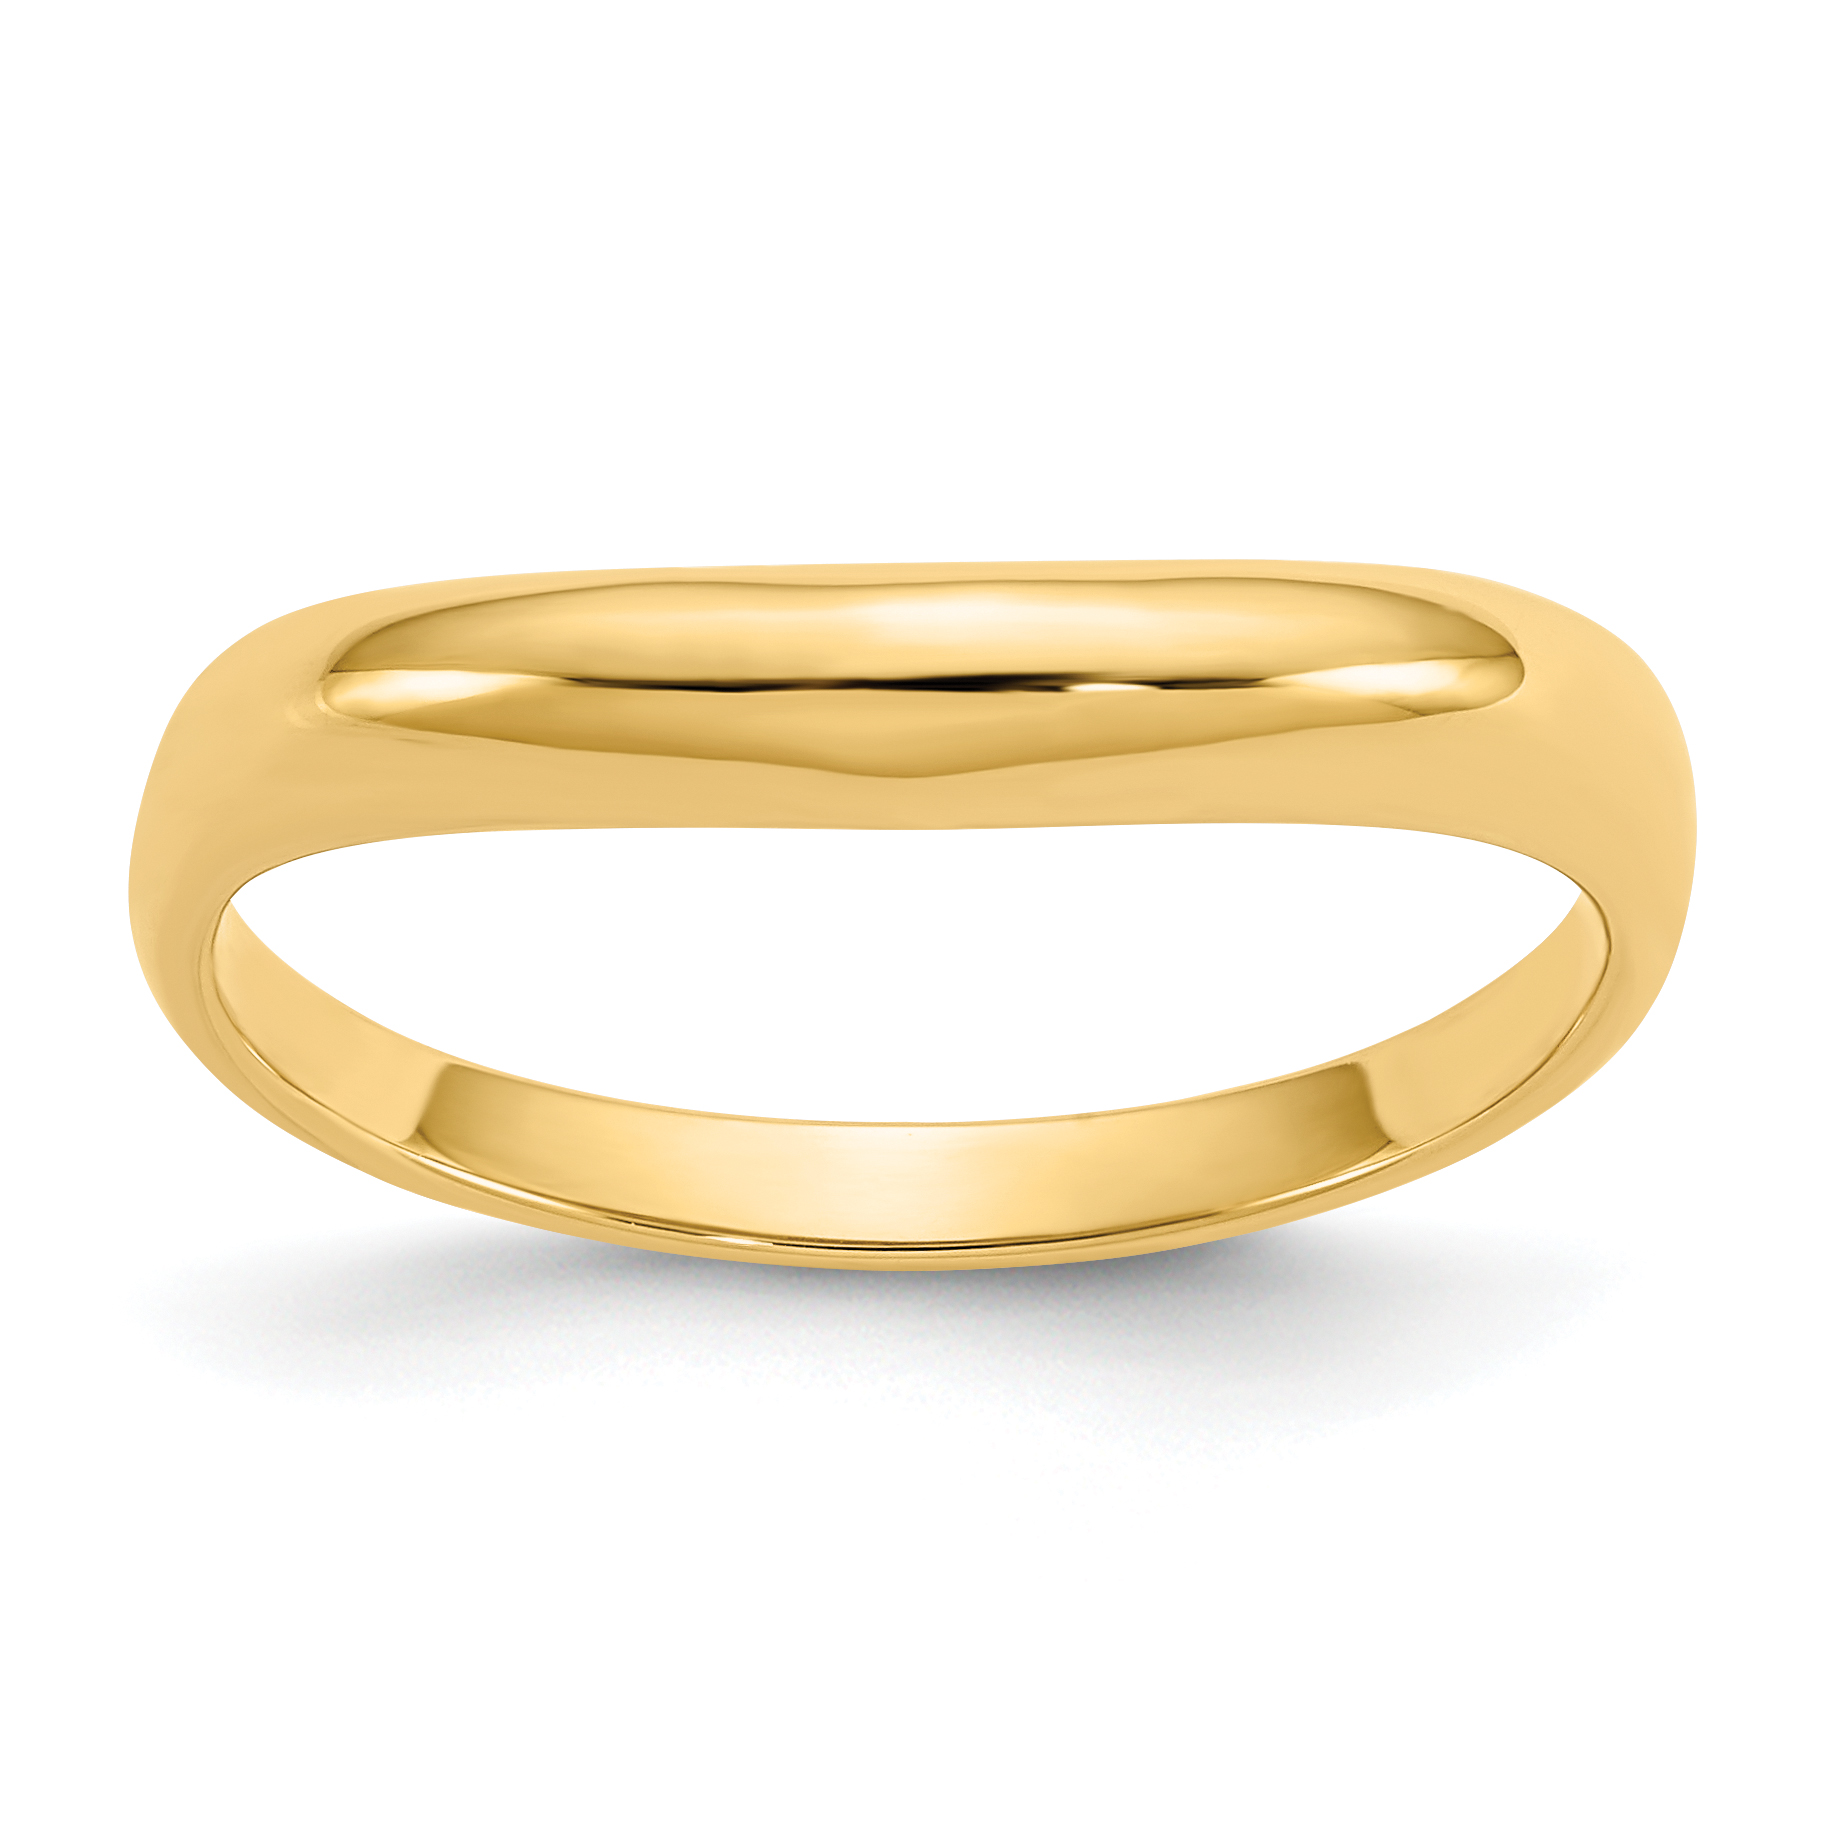 Roy Rose Jewelry 14K Yellow Gold Polished Stackable Wave Ring ~ Size 6.75